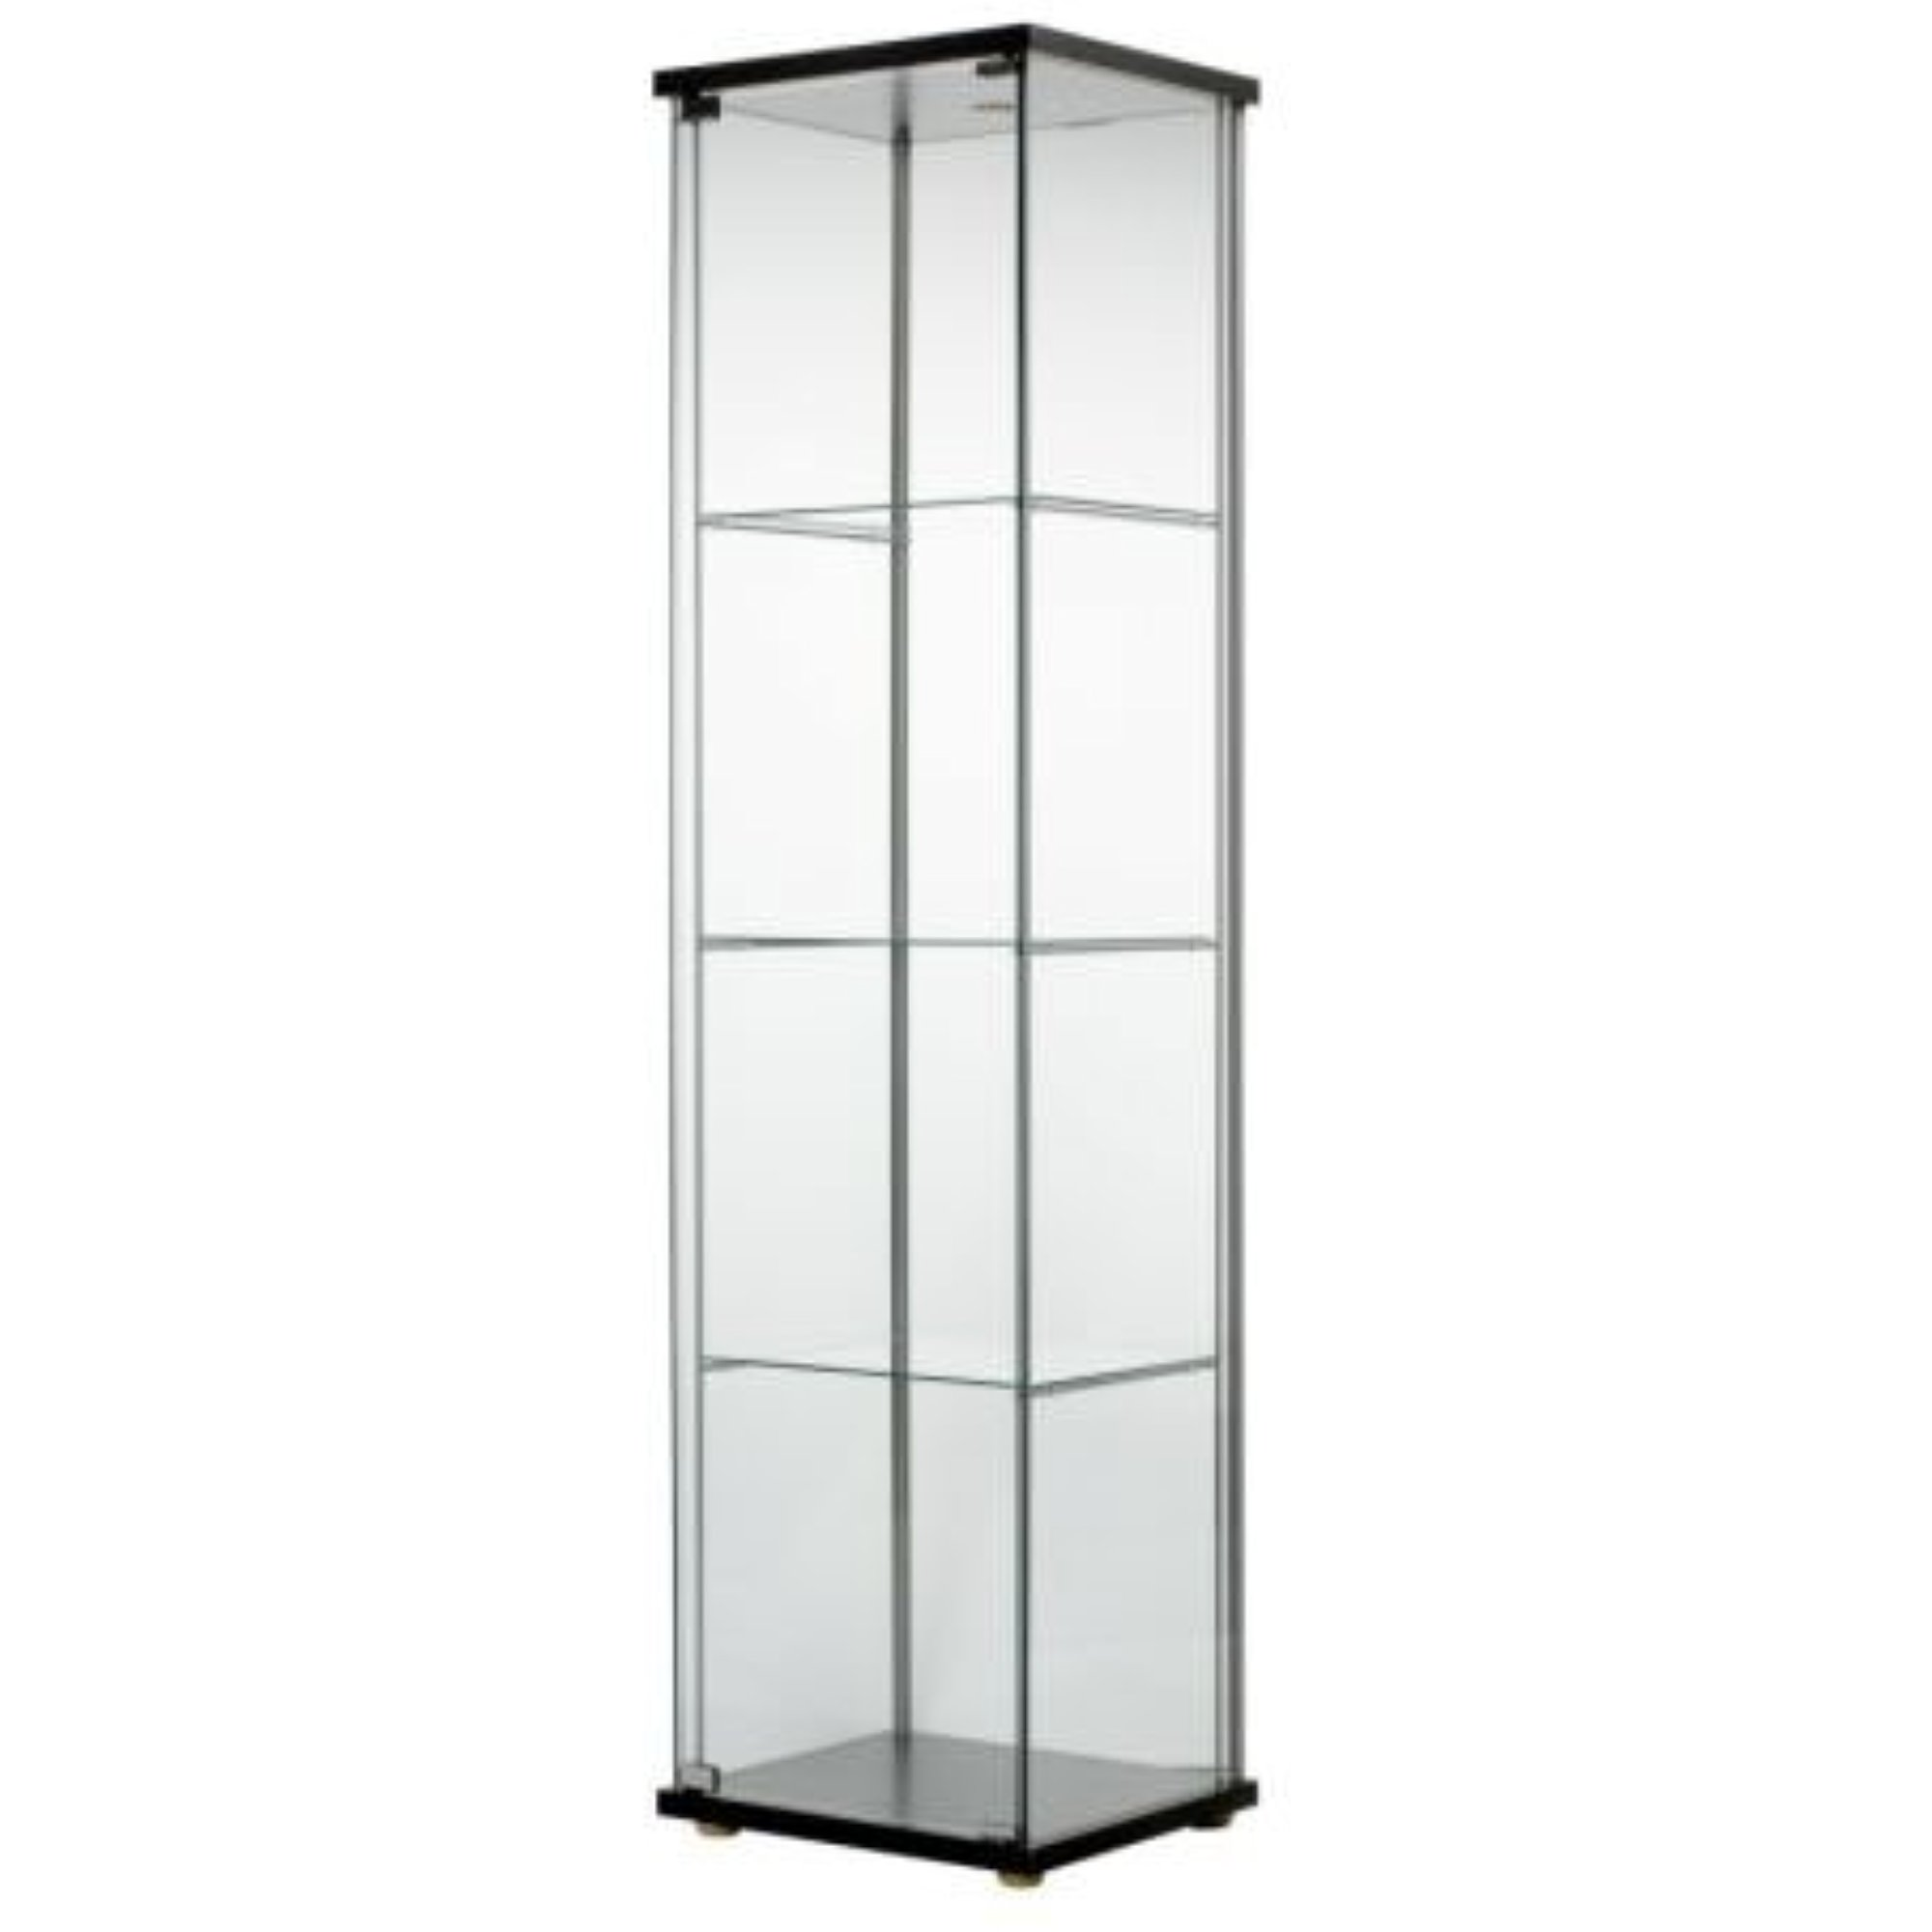 Ikea Detolf Glass Curio Display Cabinet Black , Light Is Included  626.5298.214